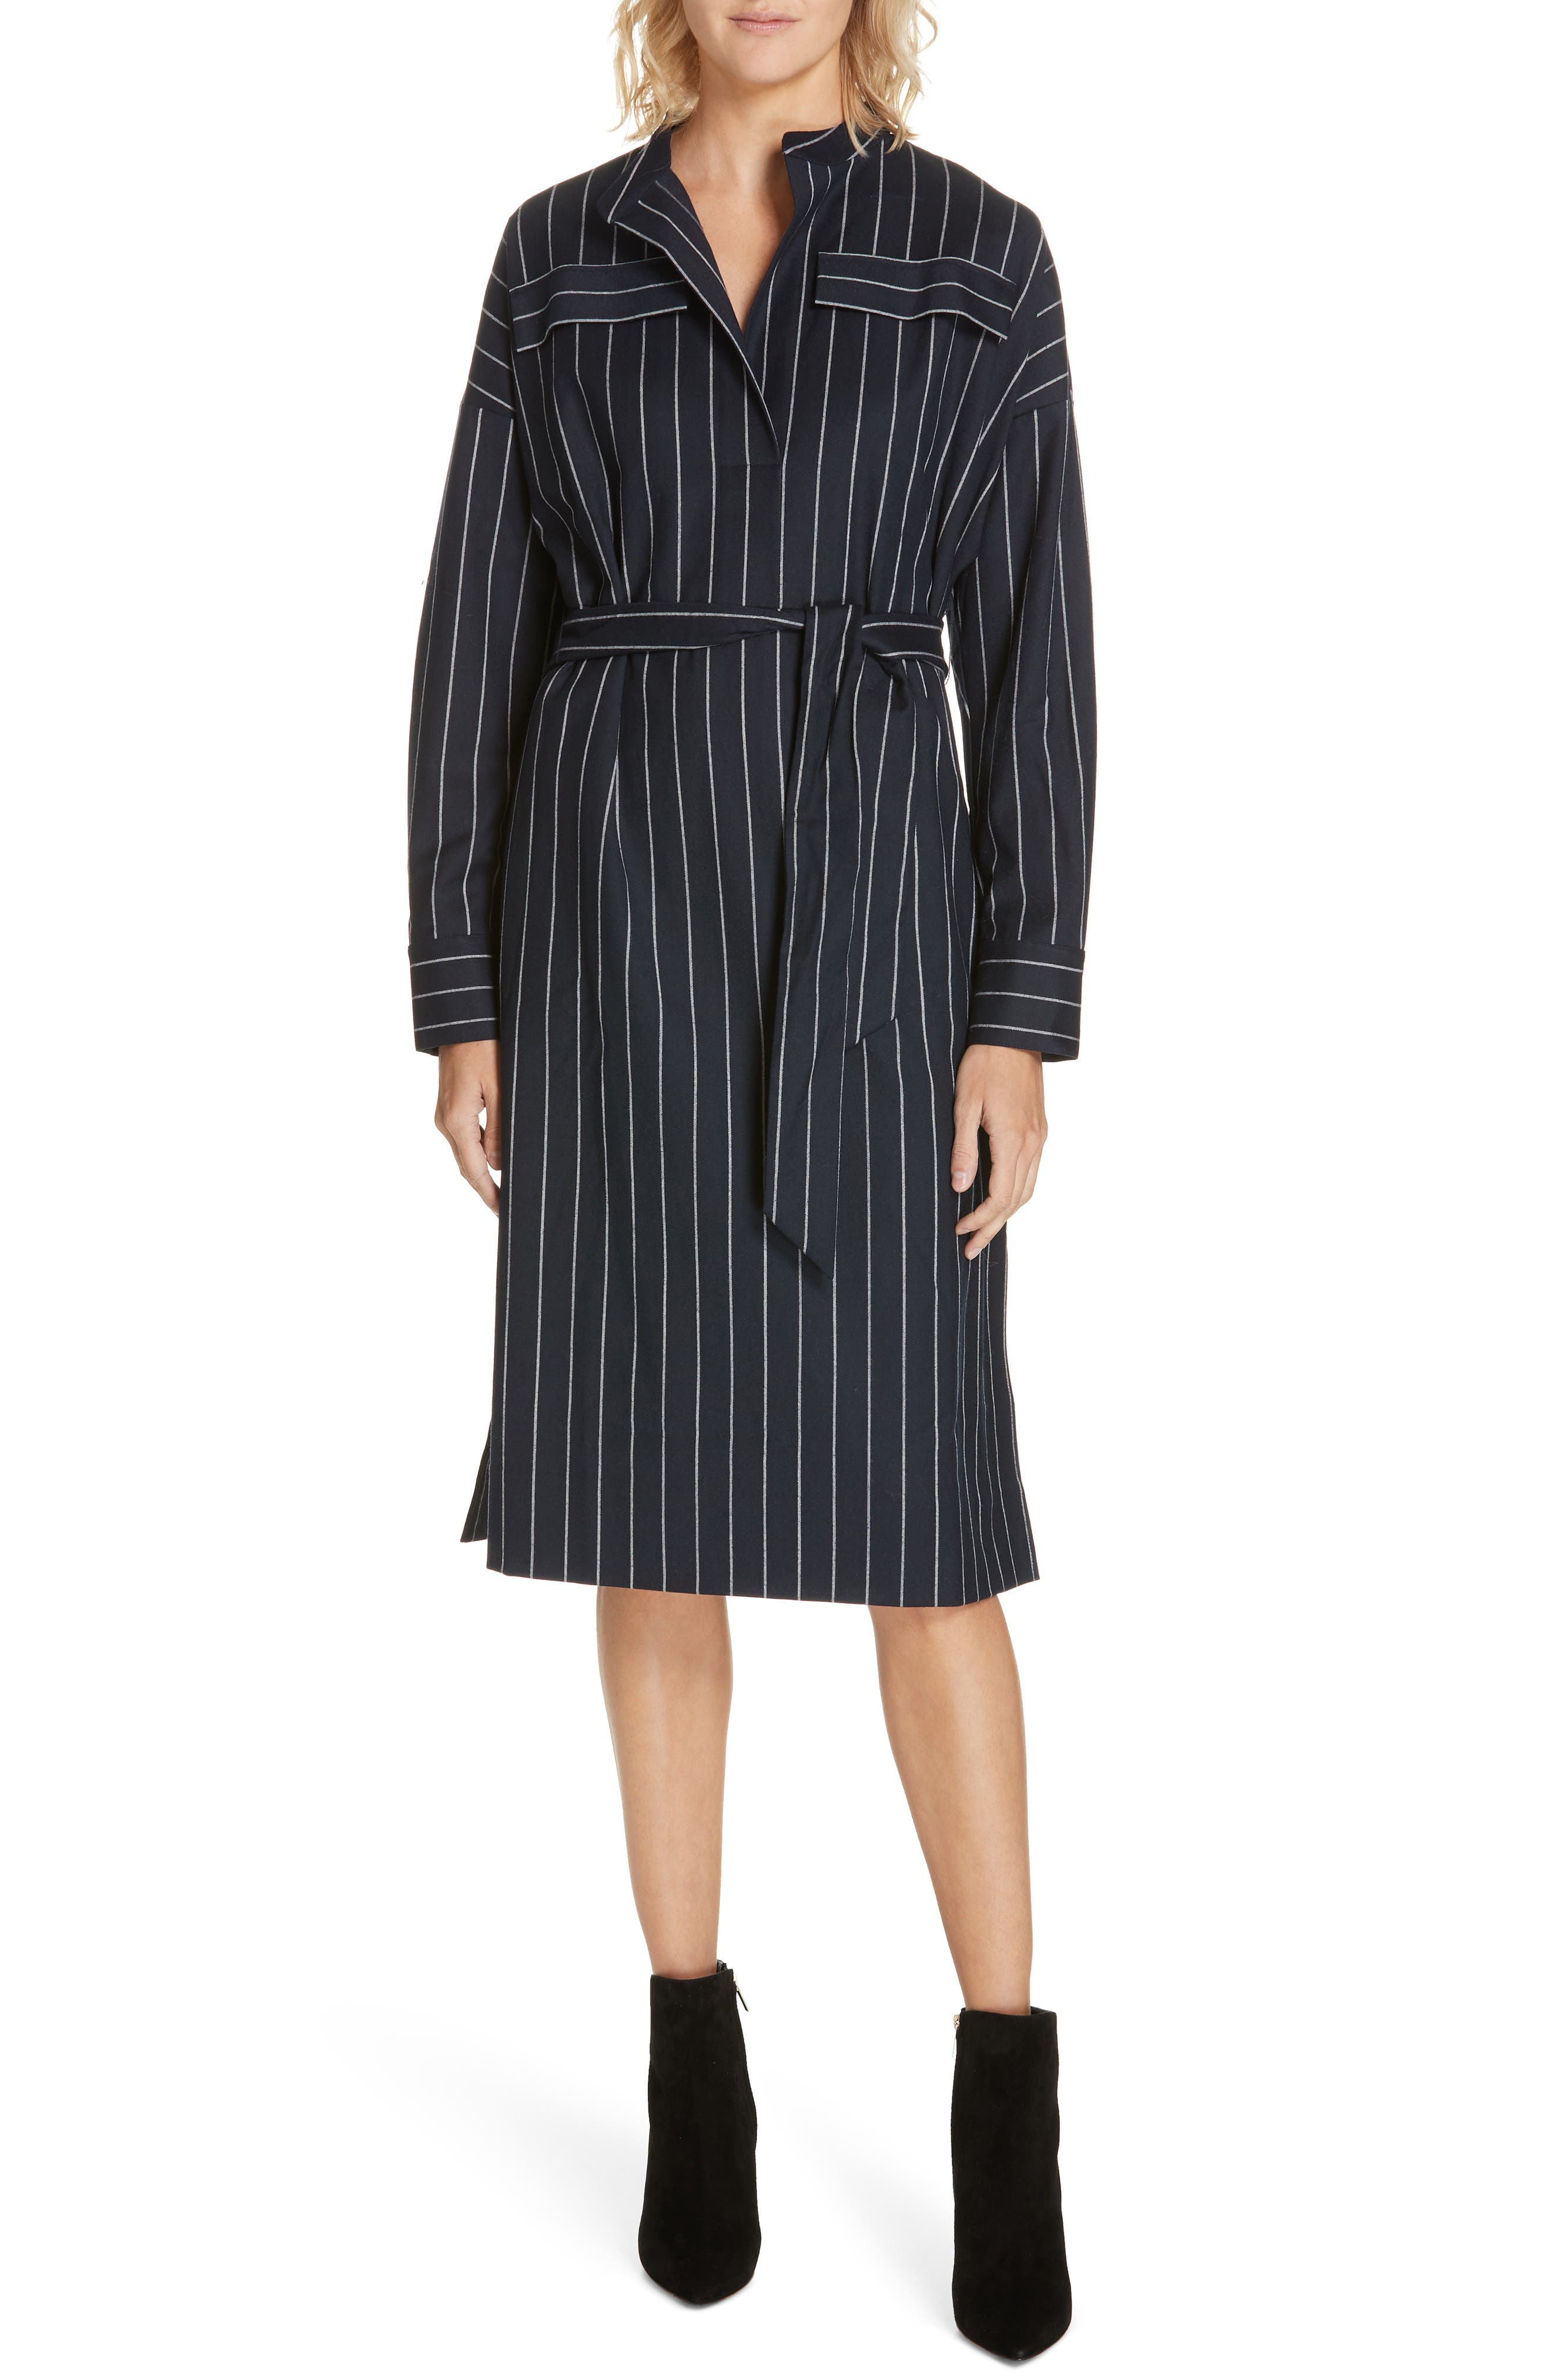 NORDSTROM SIGNATURE Belted Shirtdress, Main, color, NAVY- WHITE PREPPY STRIPE